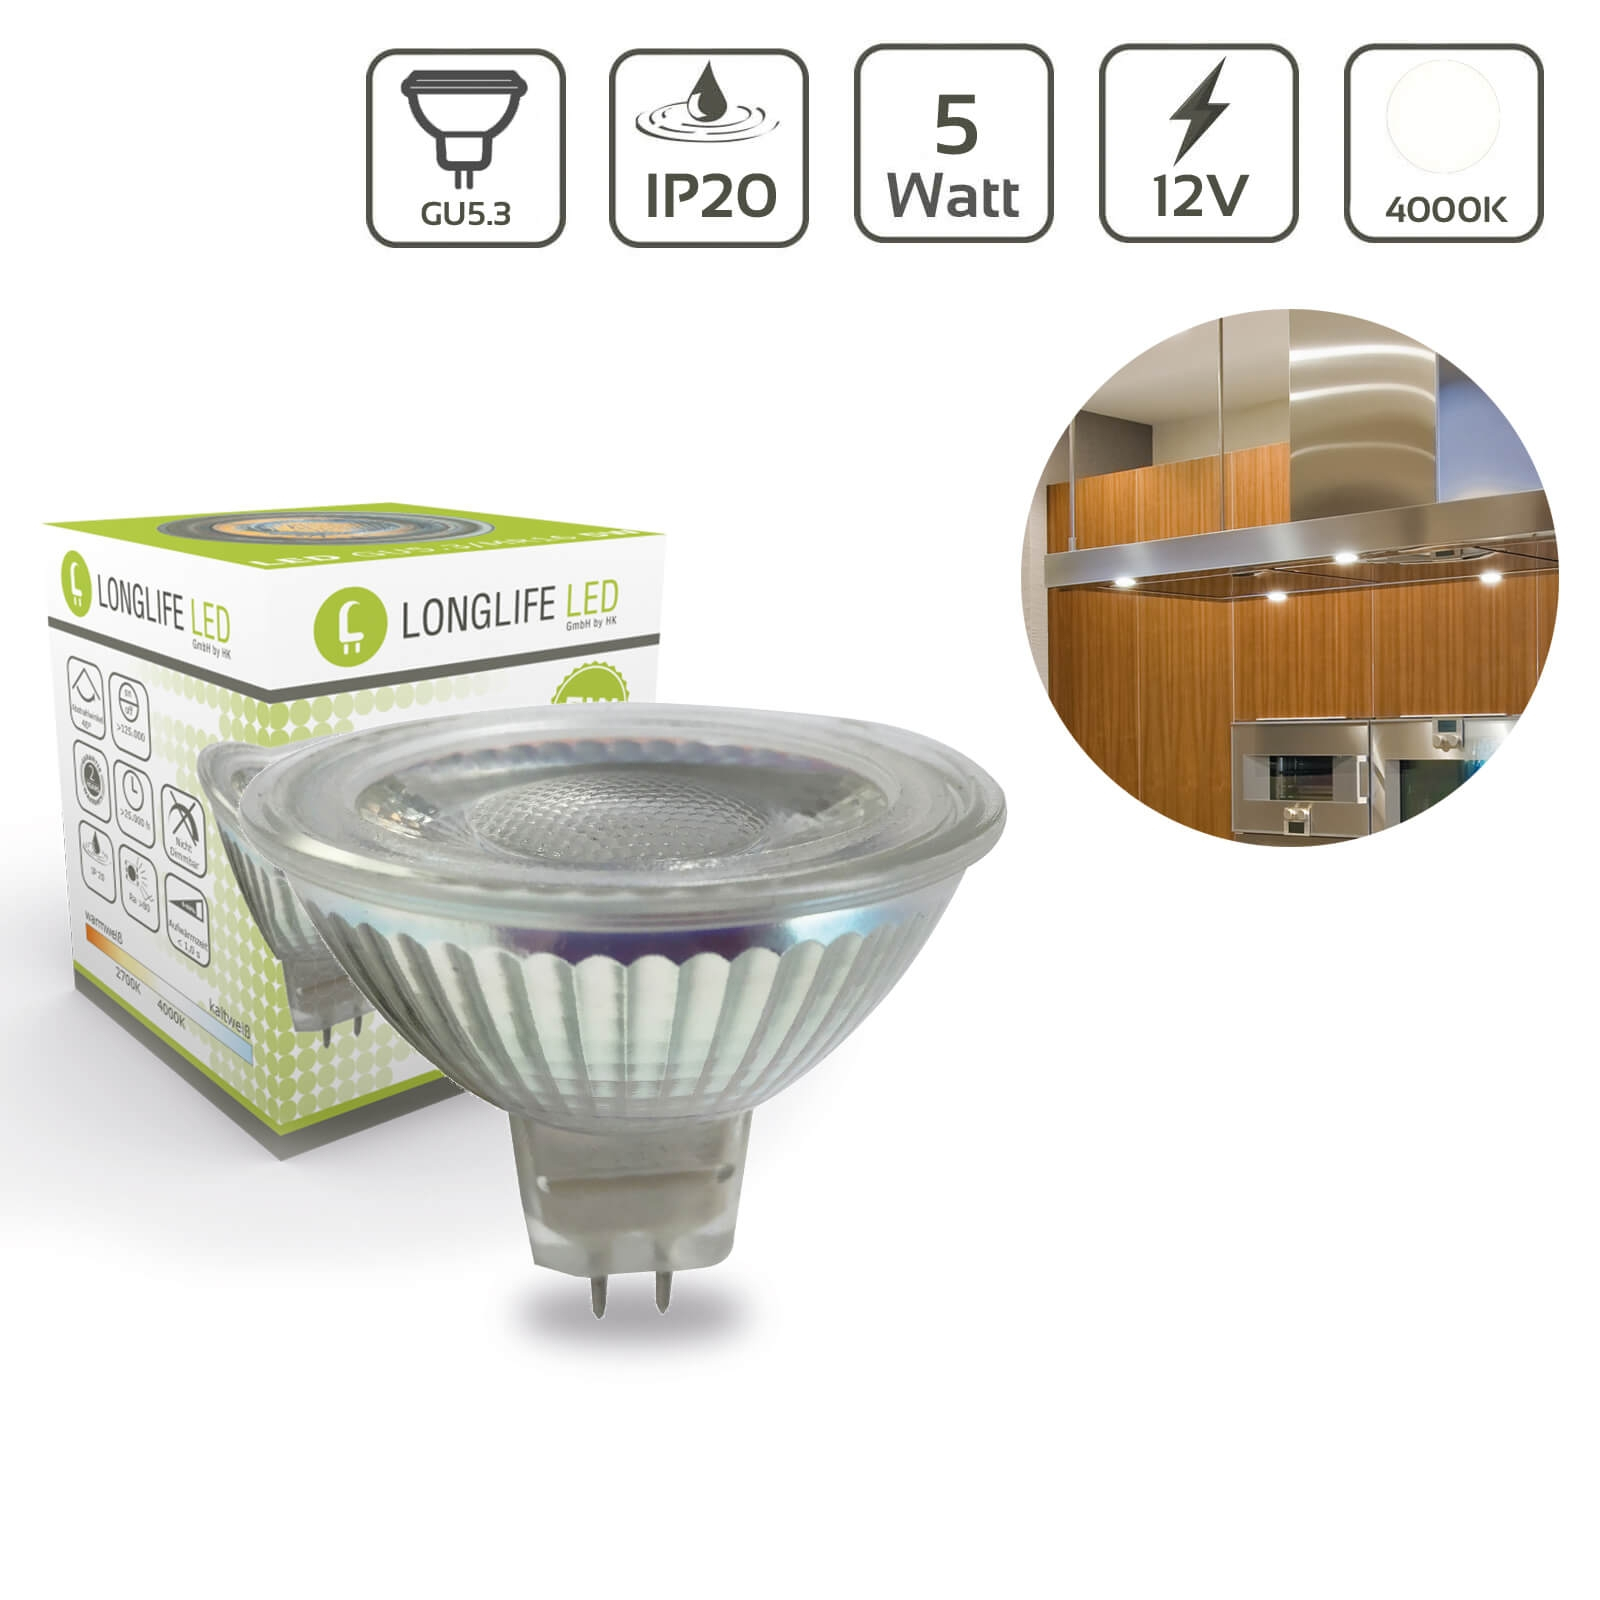 LED Spot GU5.3/MR16 5W 4000K 12VAC/DC 400lm 40°